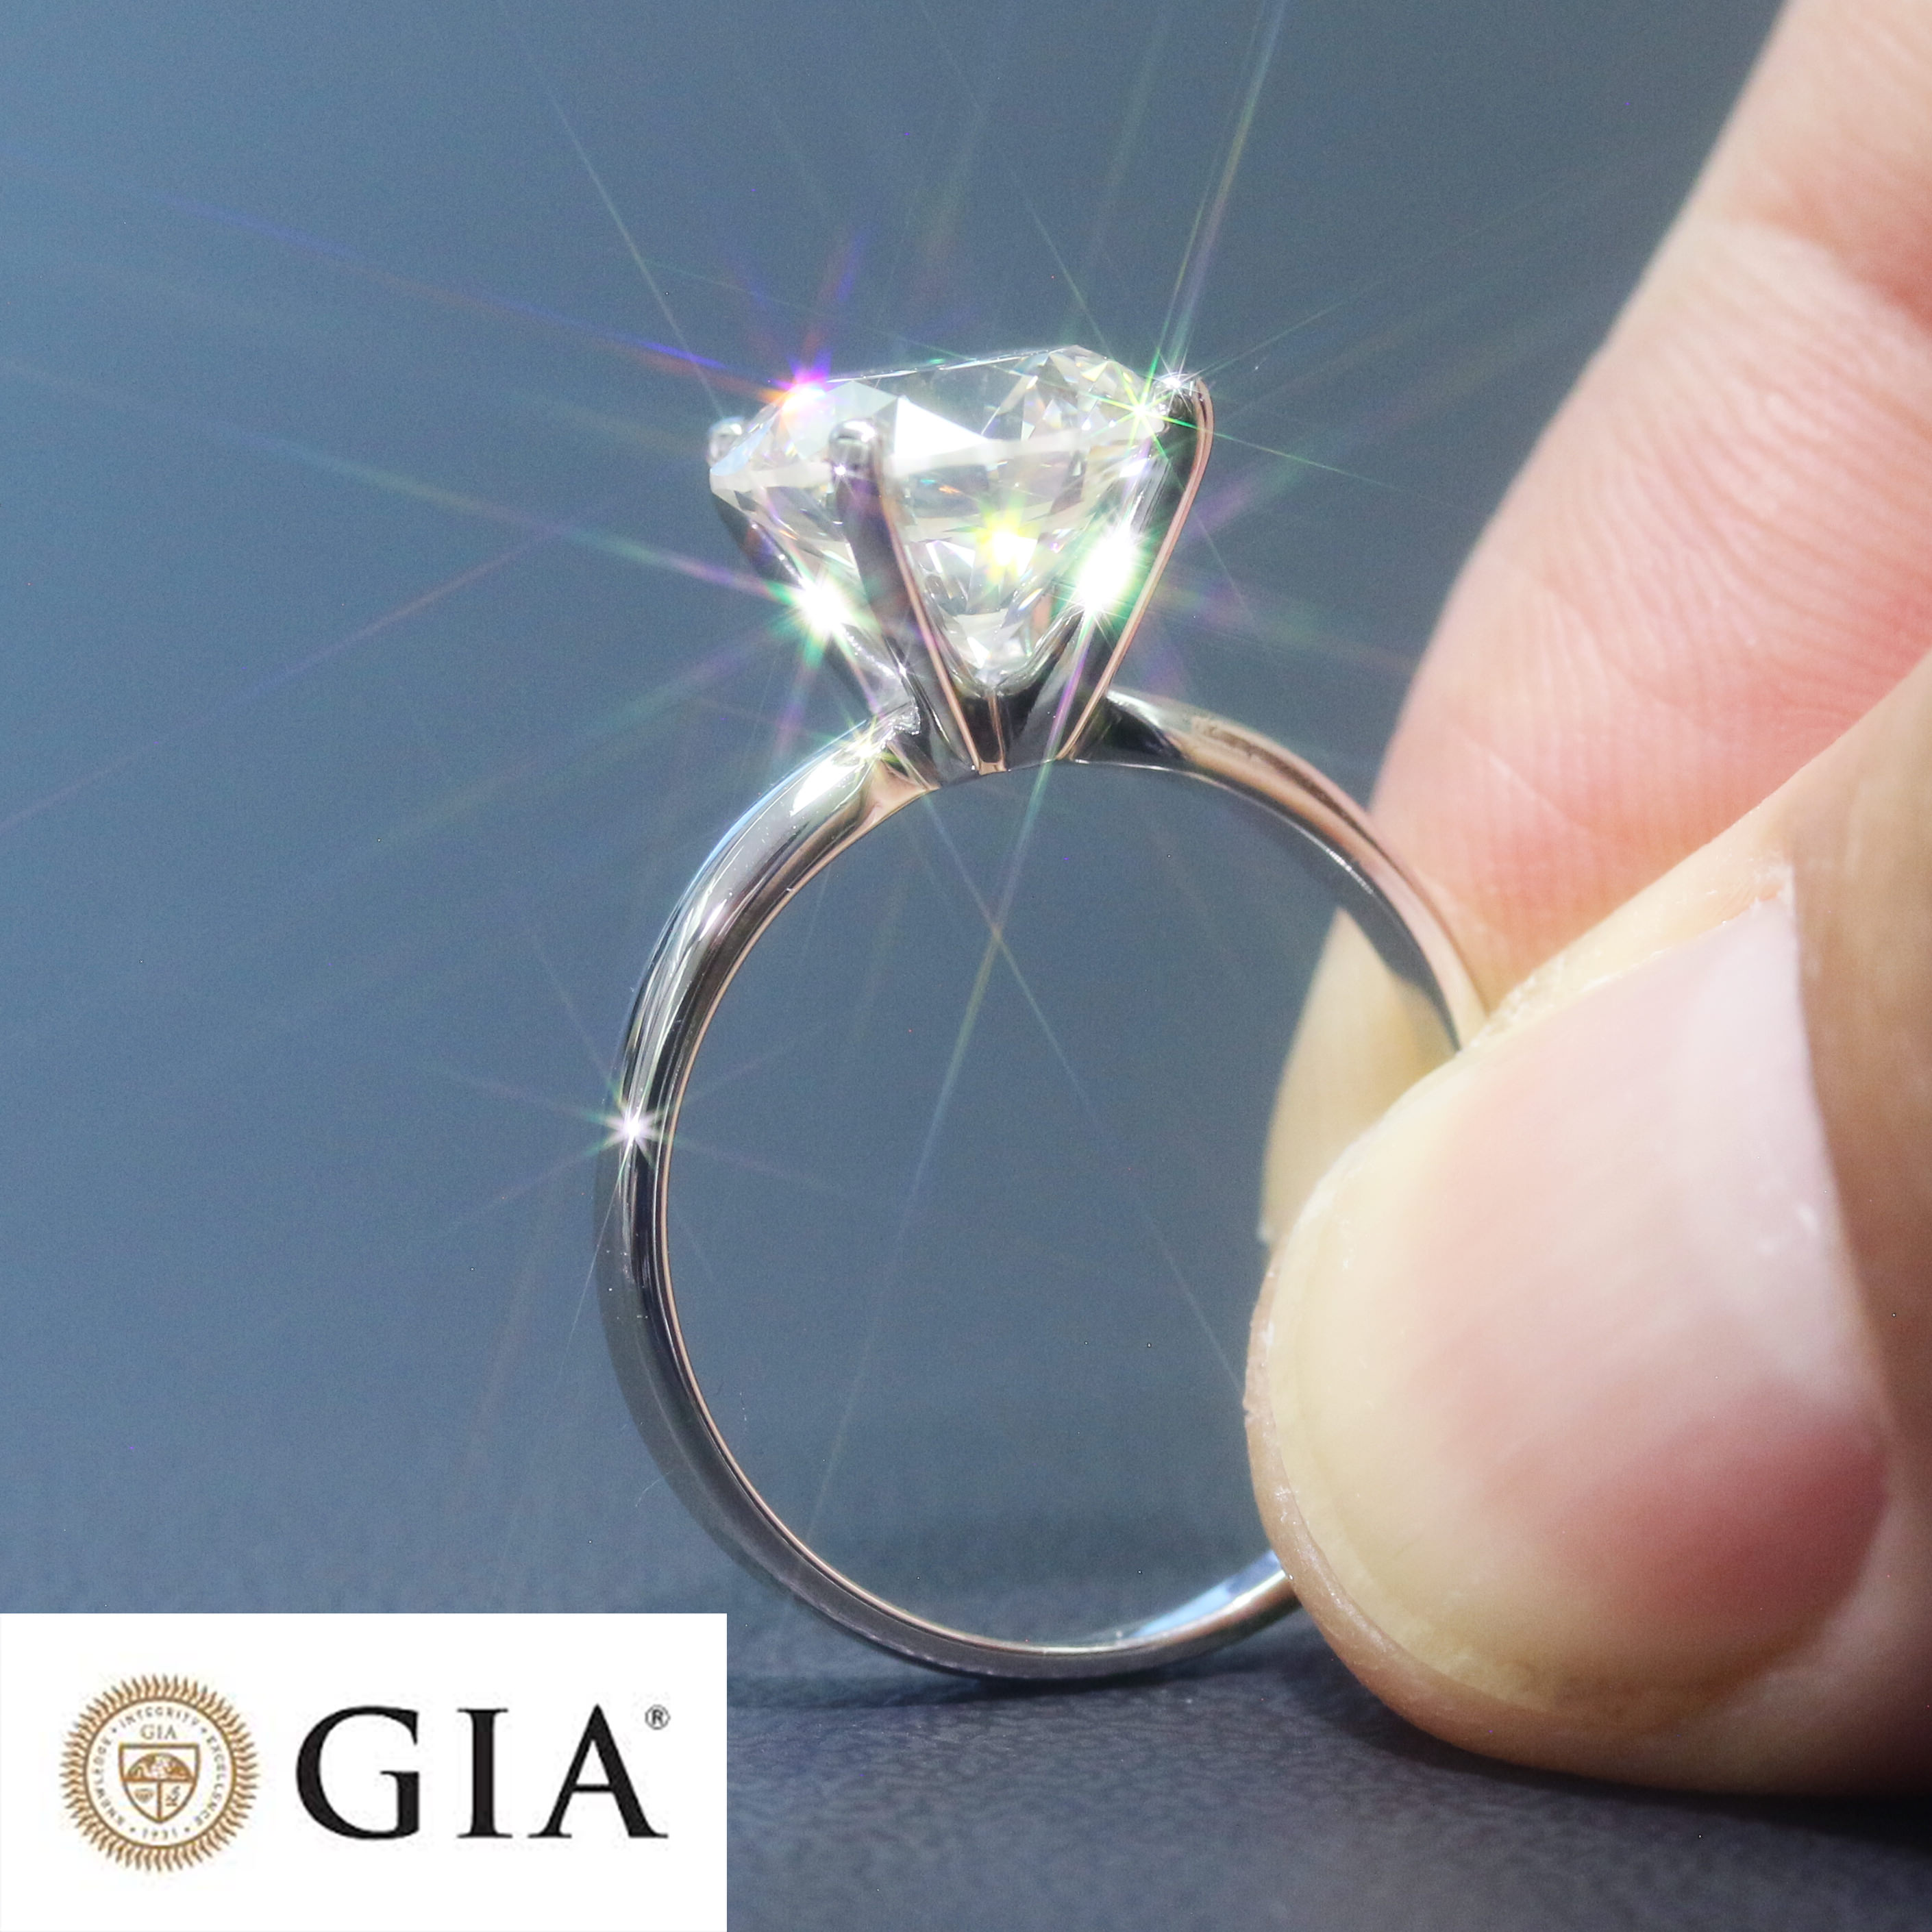 2.54 CARAT GIA CERTIFIED DIAMOND ENGAGEMENT RING - 14K WHITE GOLD